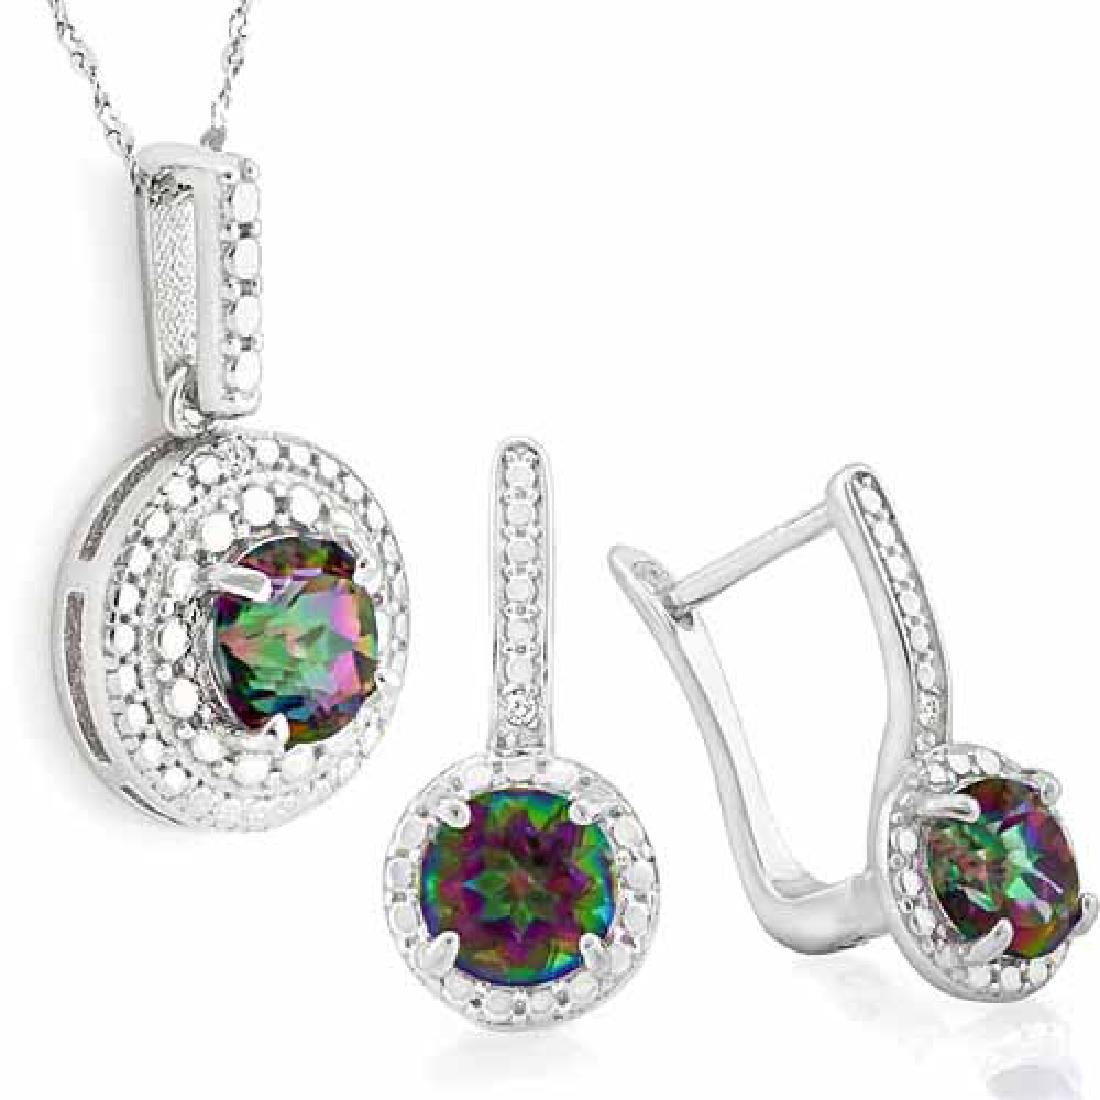 3 CARAT MYSTIC GEMSTONE & DIAMOND 925 STERLING SILVER S